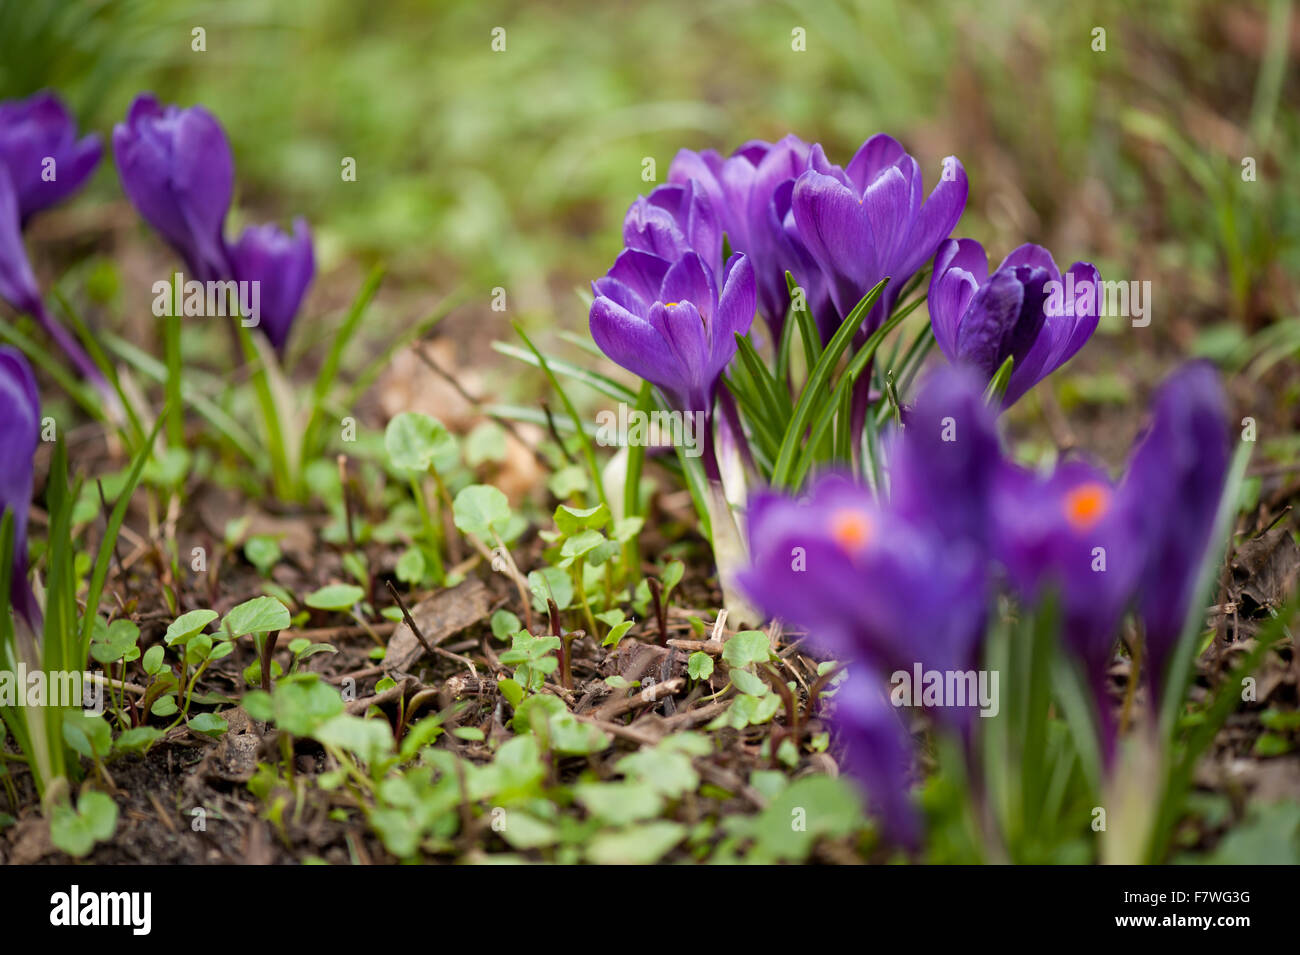 Croci Purple Flowers Closeup Flowering Plants Clumps In The Iris